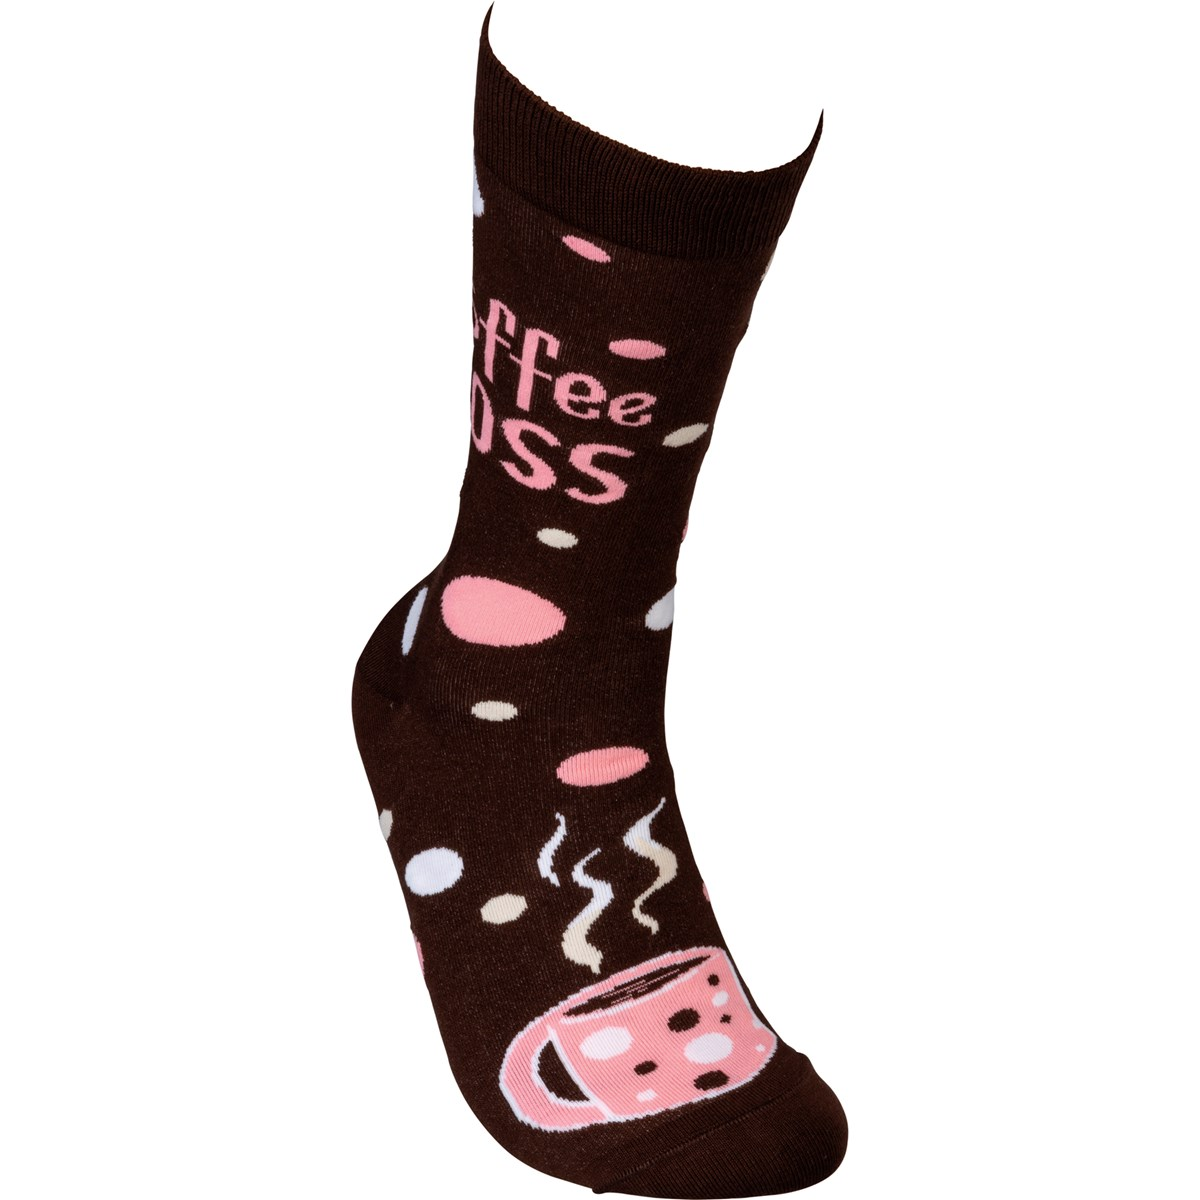 Socks - Coffee Boss - One Size Fits Most - Cotton, Nylon, Spandex